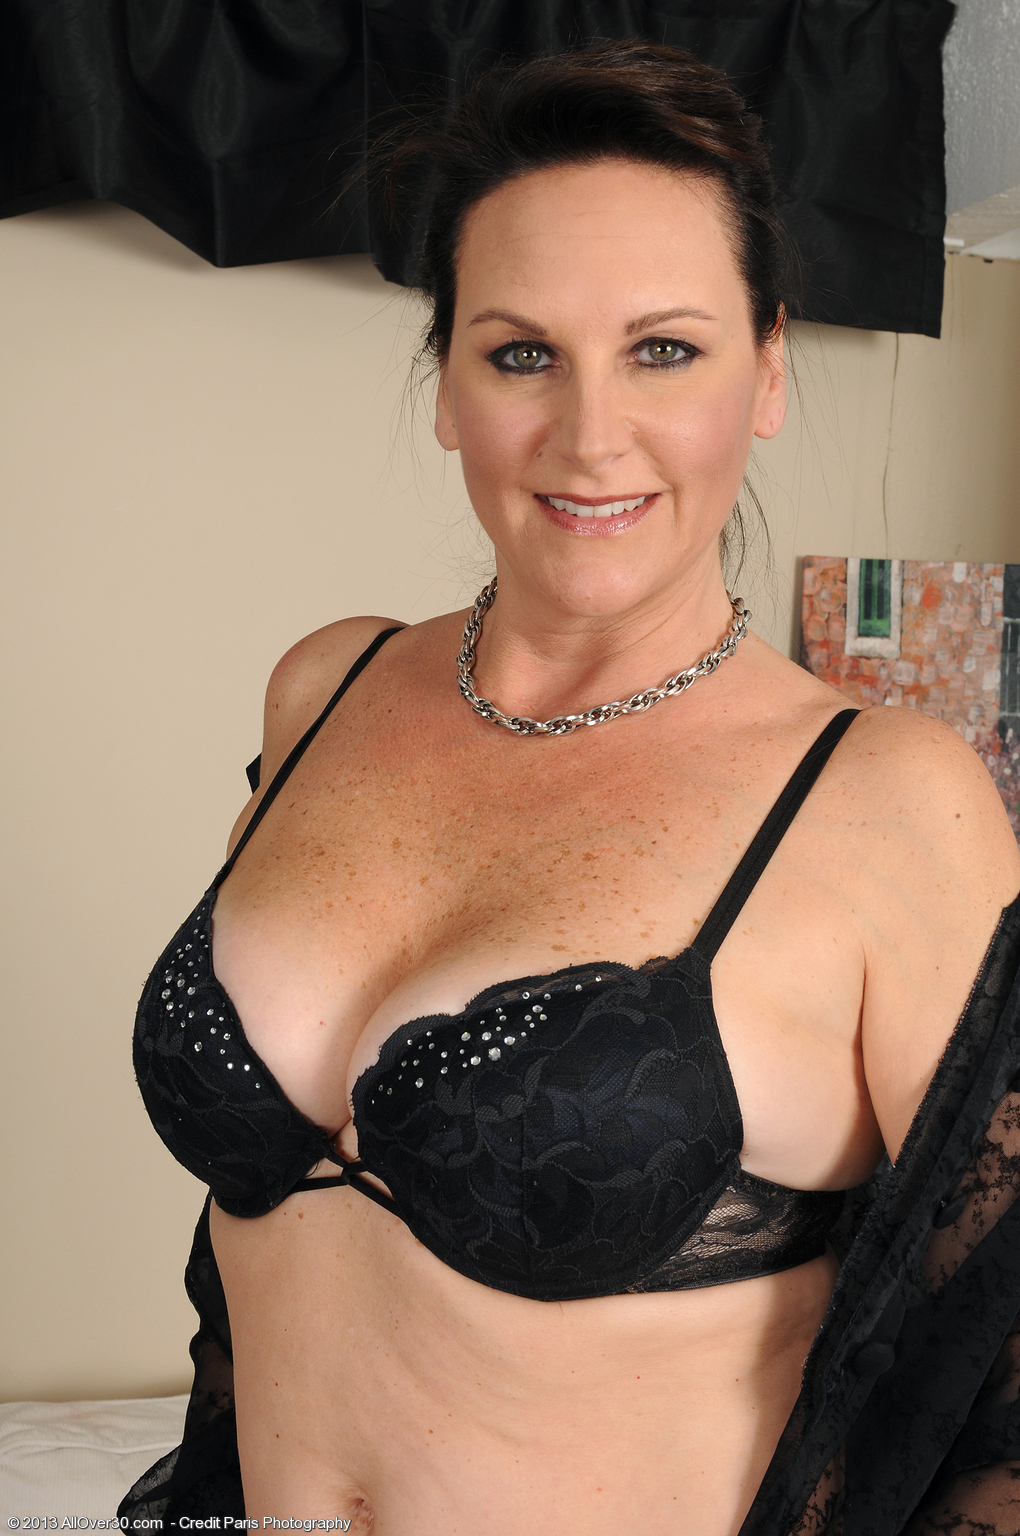 Must Sexy girls with nice tits most likely the kinkiest